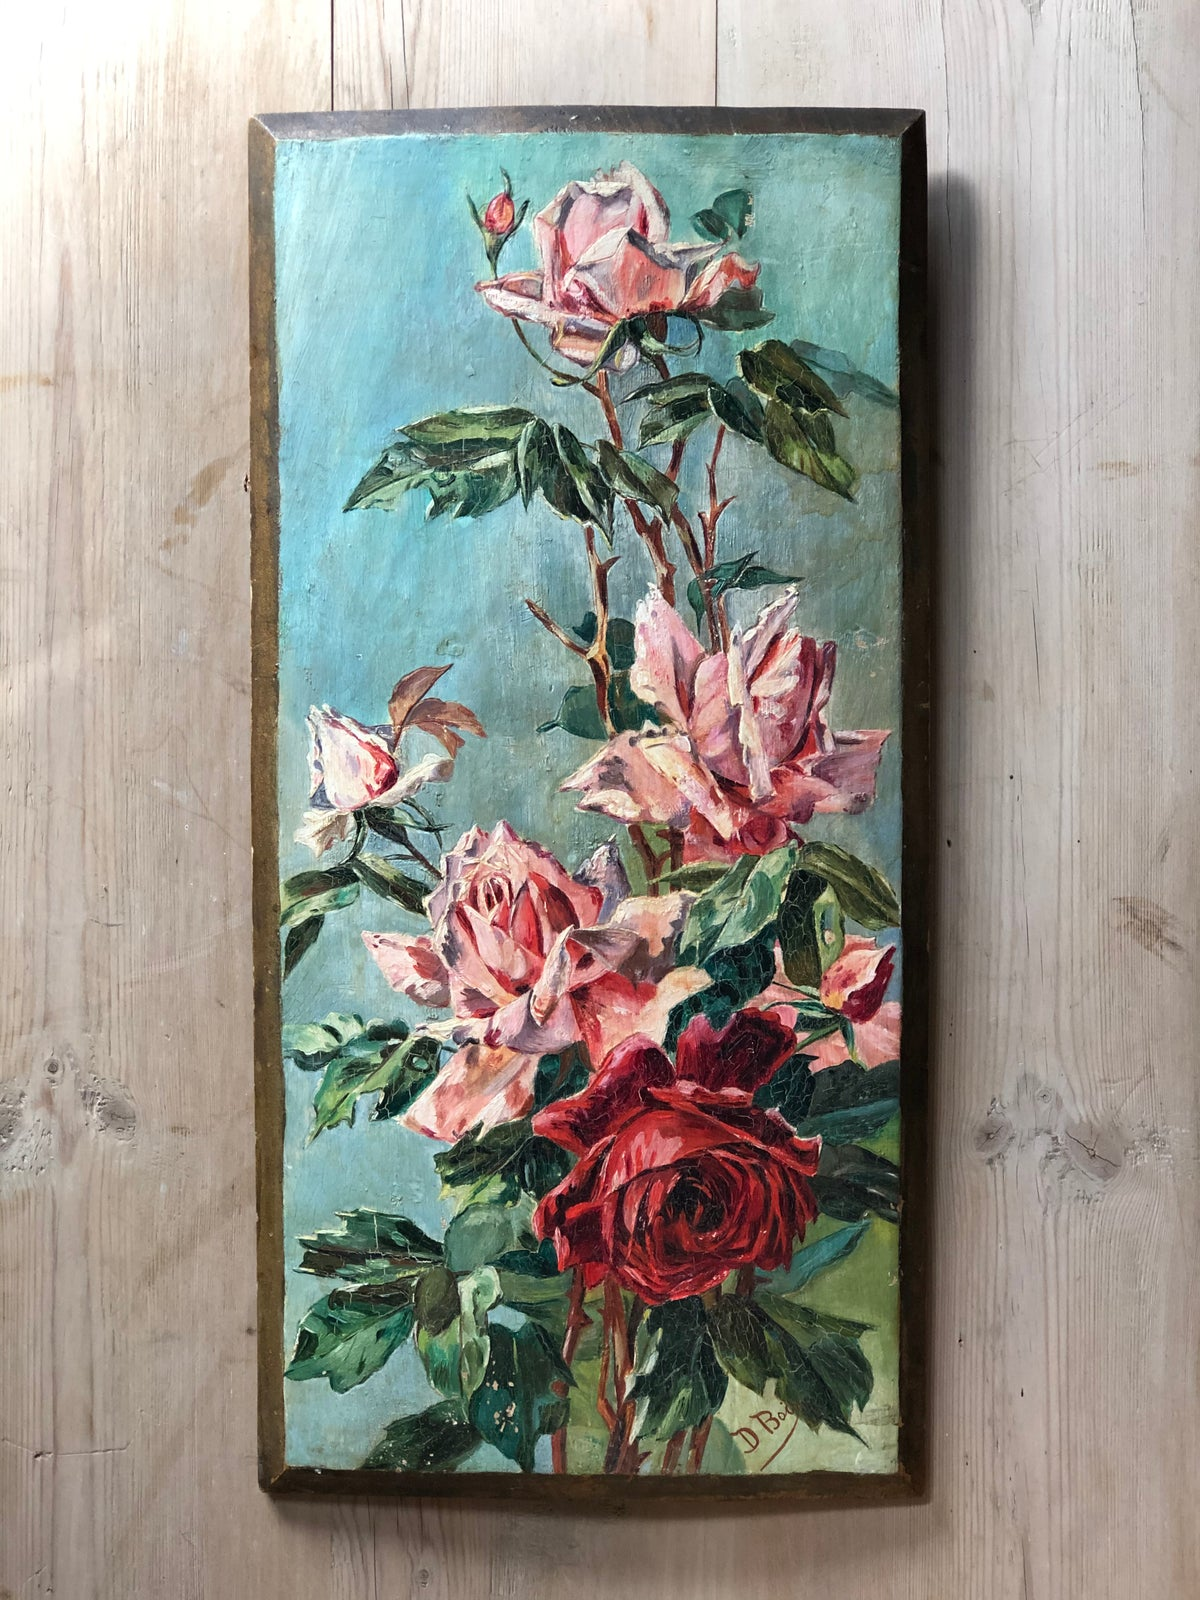 Image of Oil painting of roses on wood